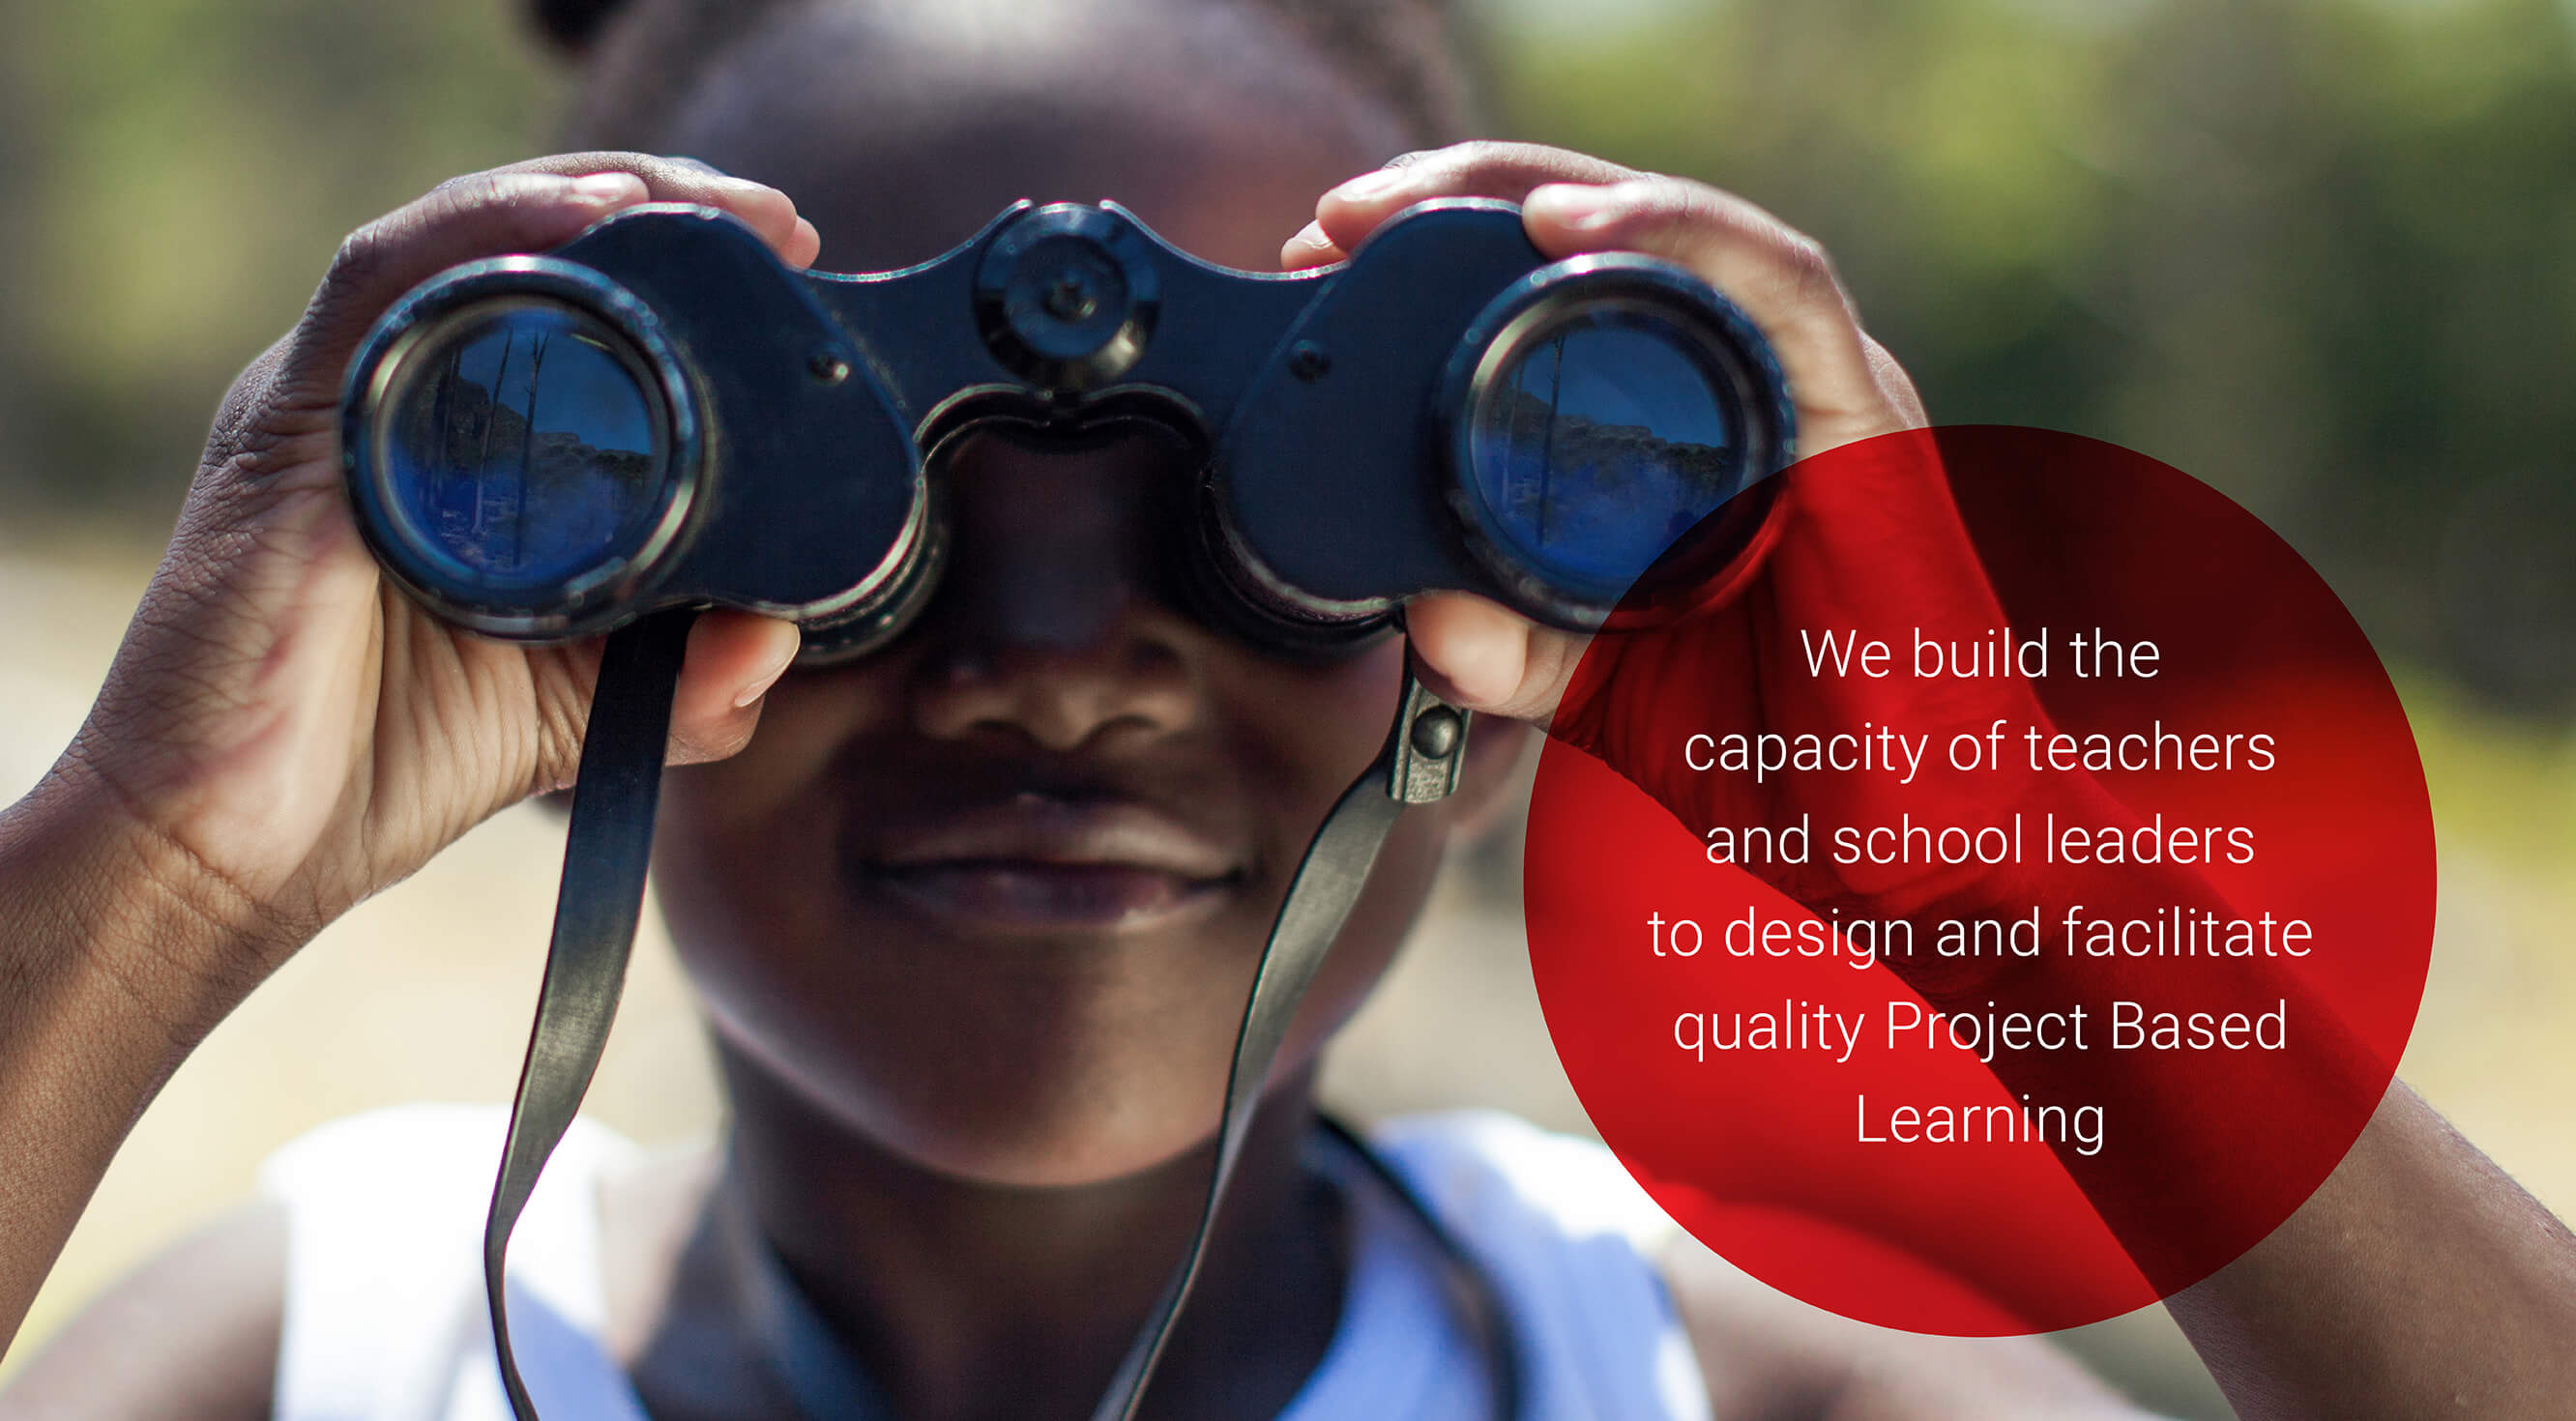 We build the capacity of teachers and school leaders to design and facilitate quality Project Based Learning with a closeup of a young girl looking through binoculars